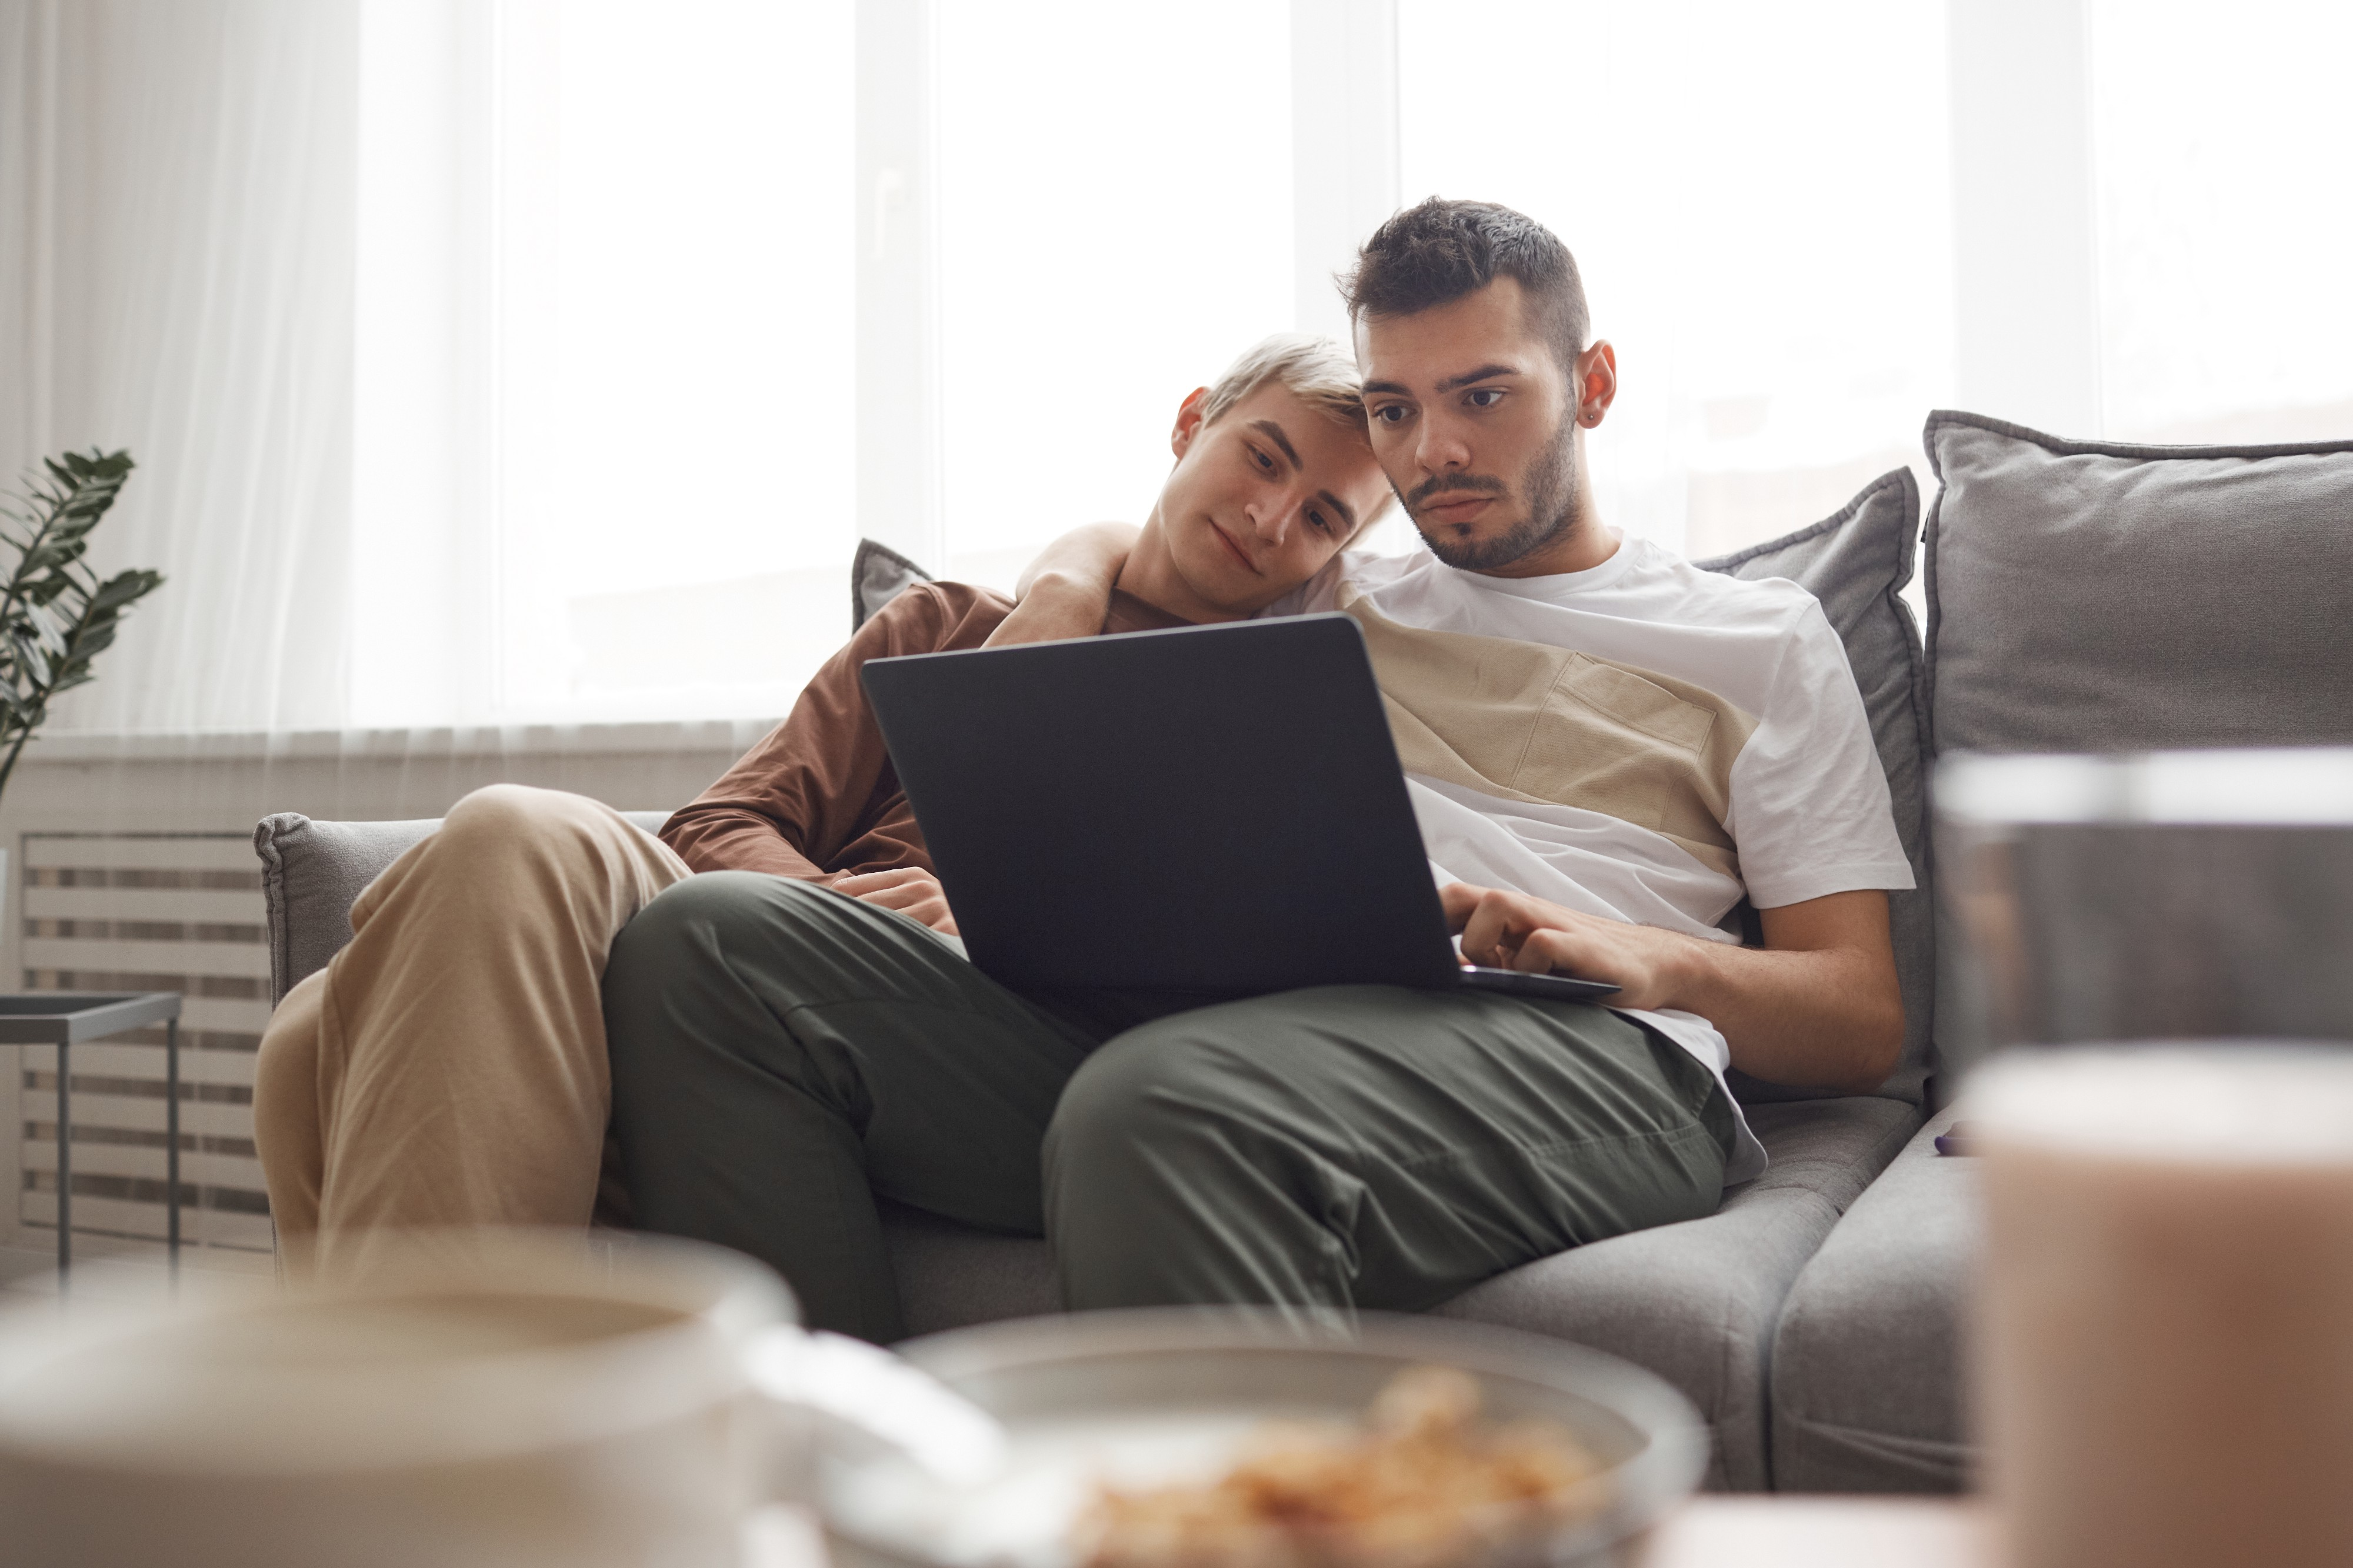 A couple embrace one another on the sofa and watch a movie on a laptop.